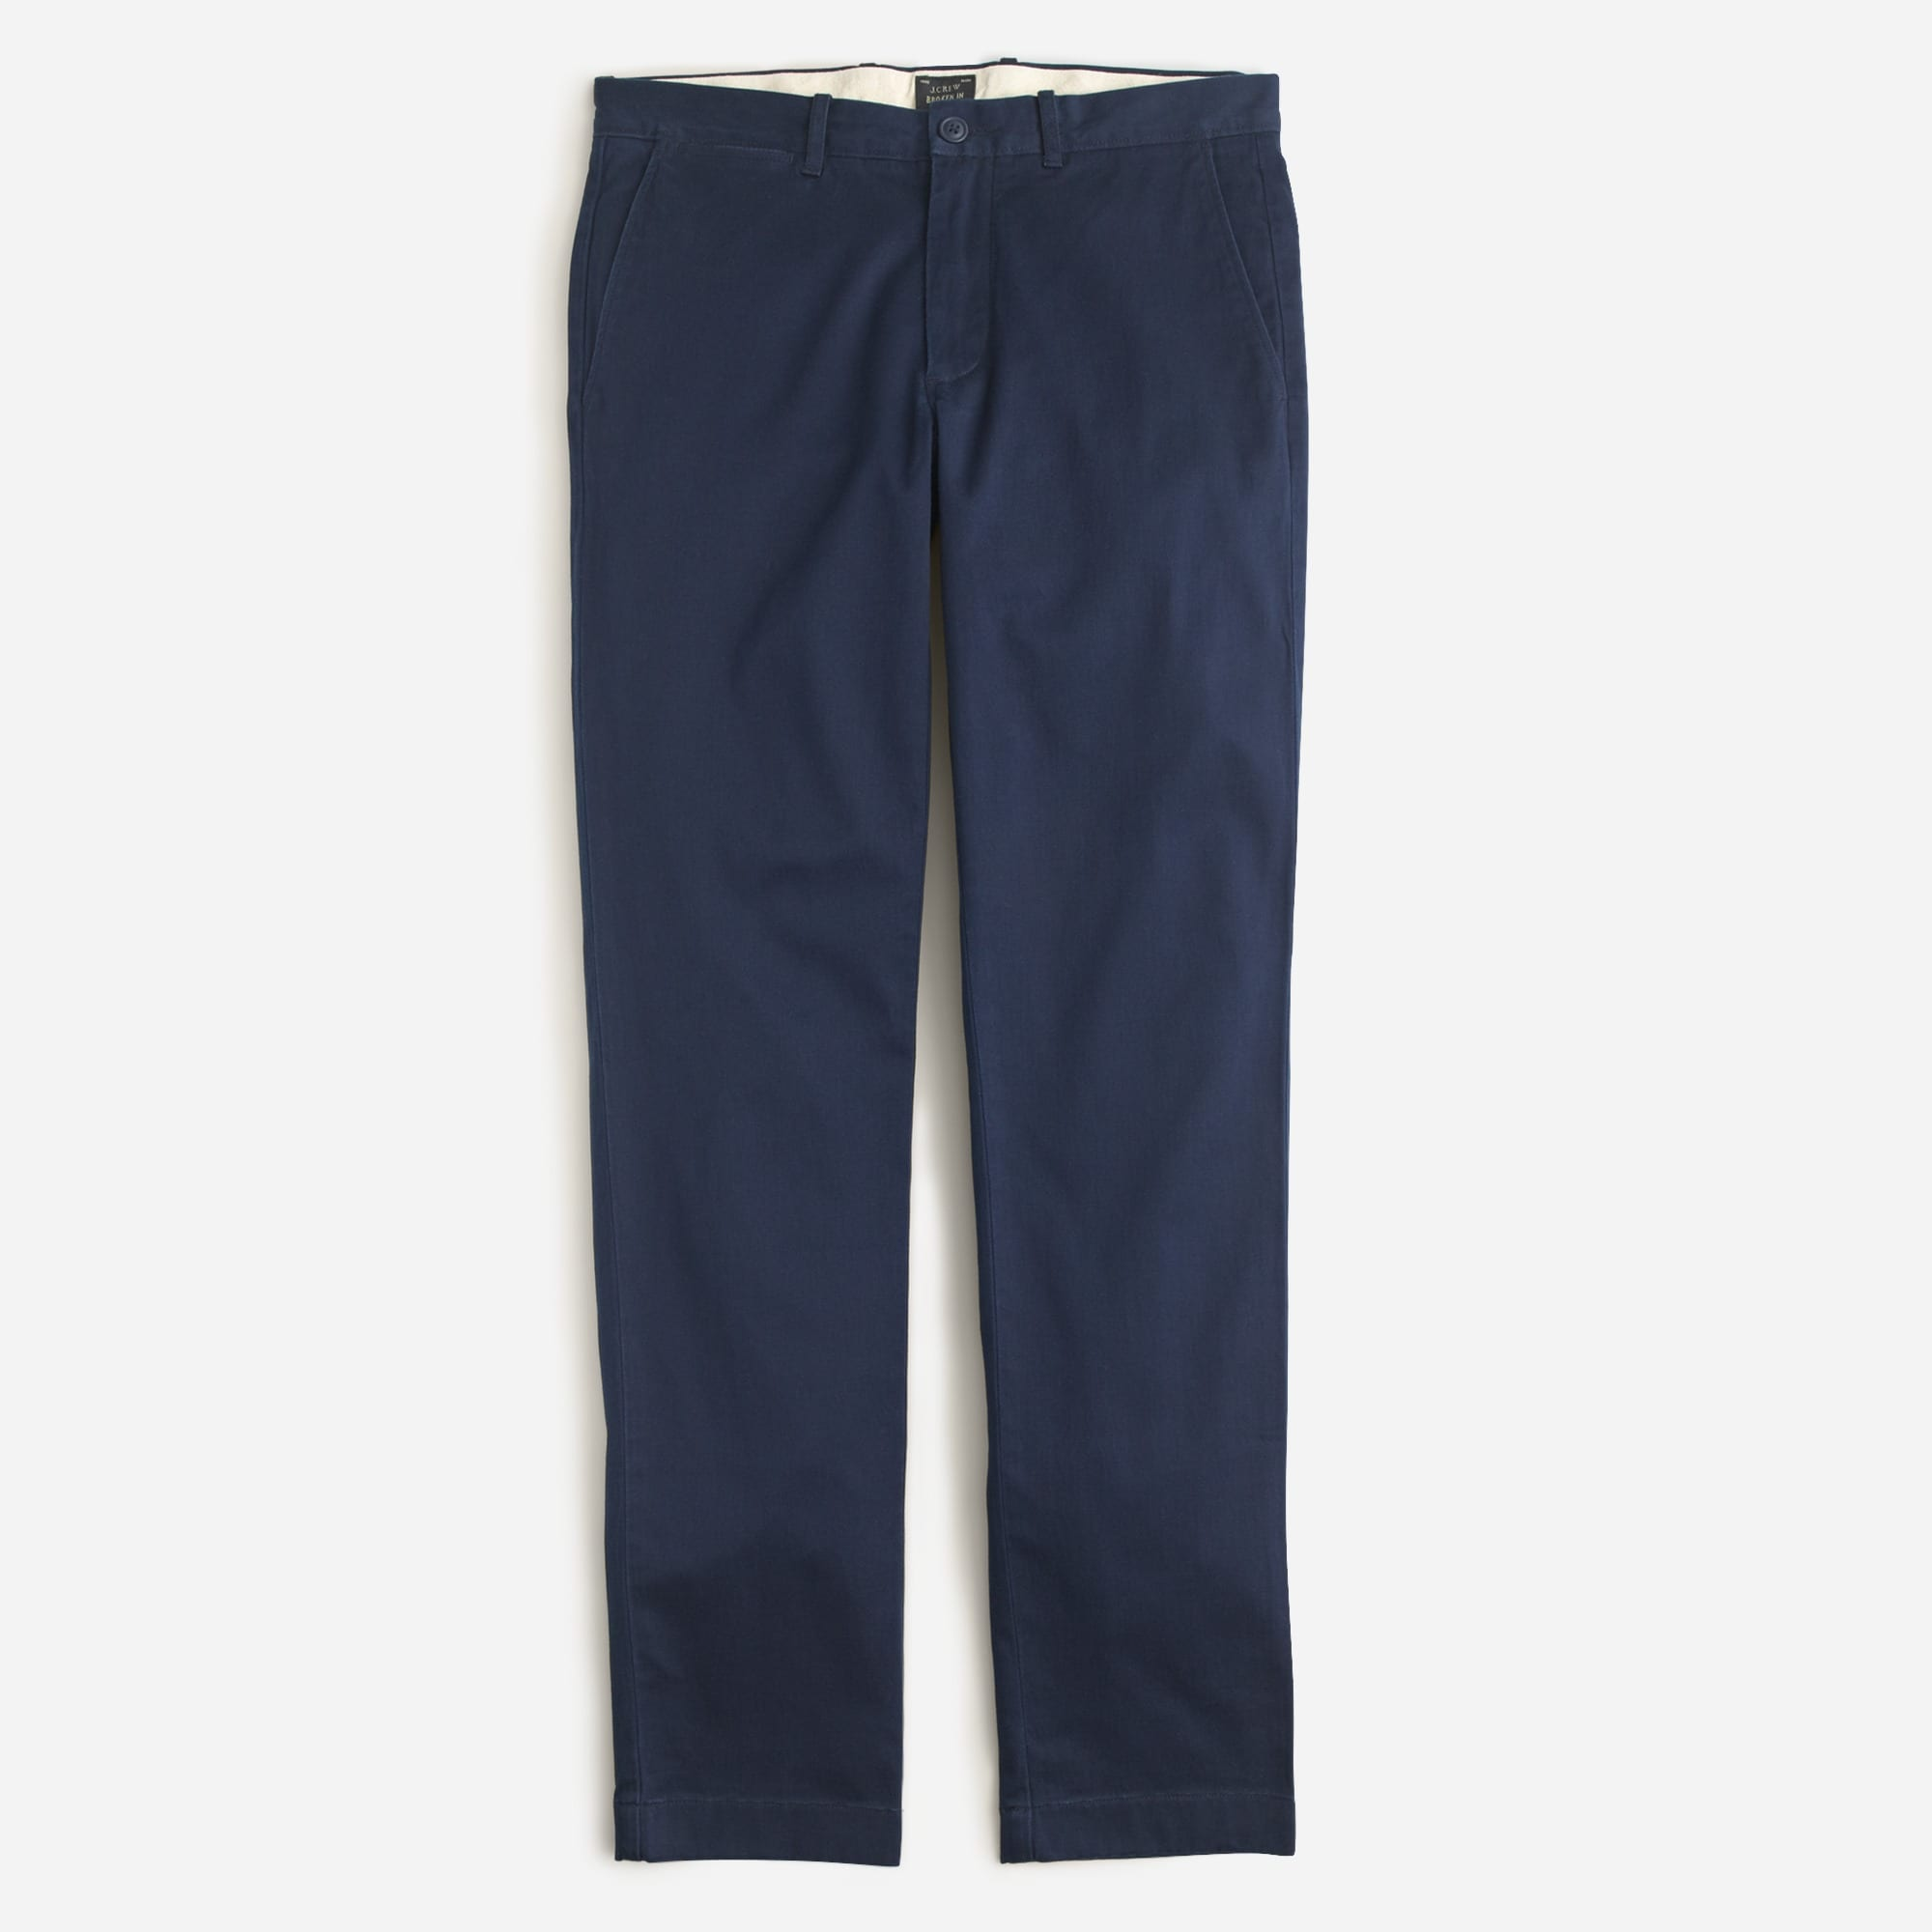 770 straight-fit pant in stretch chino - men's pants